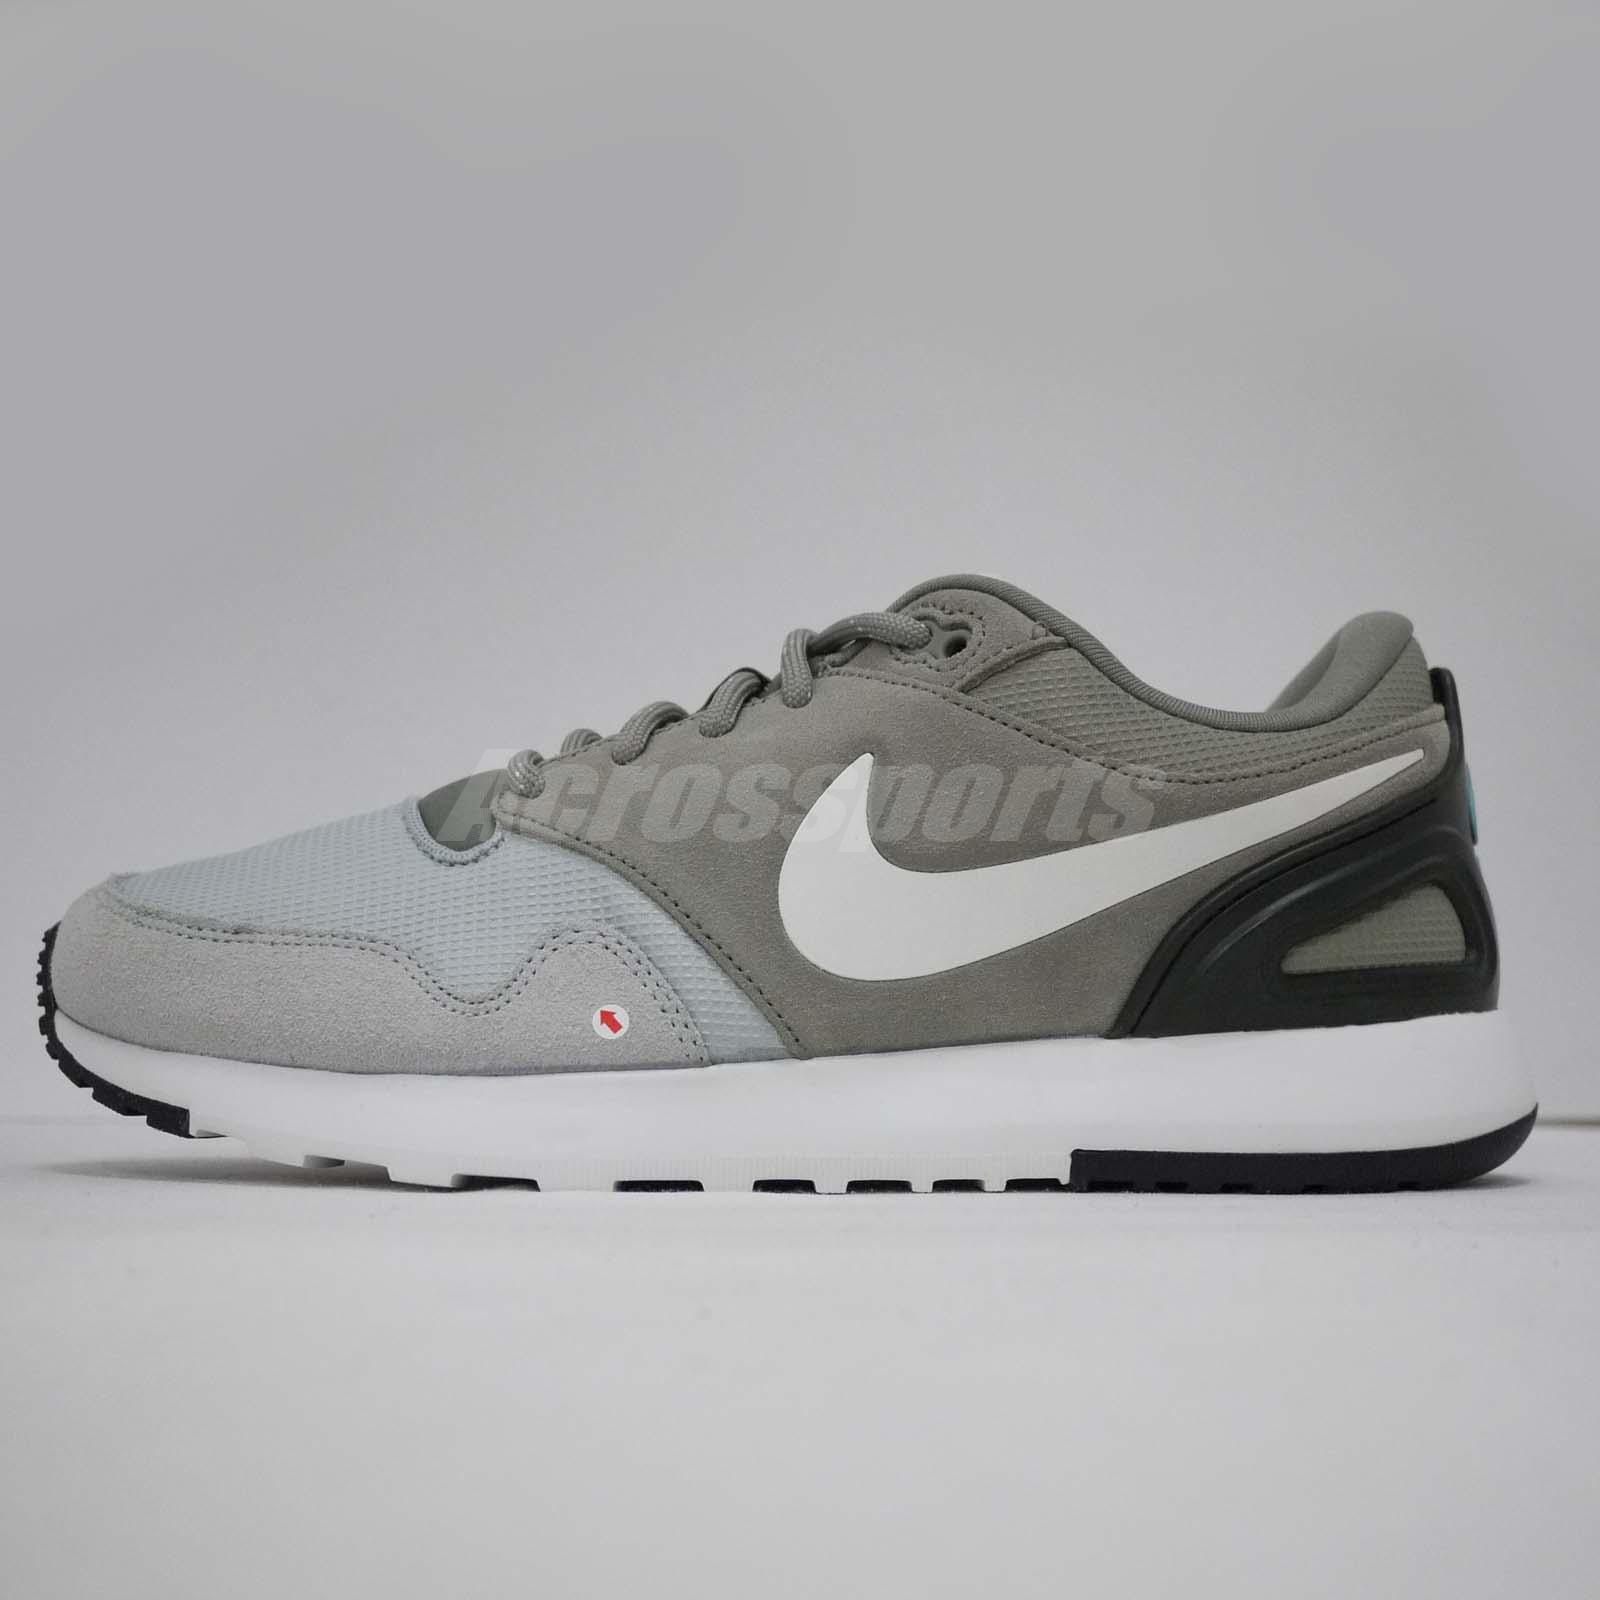 d77e75faccd Nike Air Vibenna SE Left Foot With Discoloration Men Shoes US9.5 902807-006